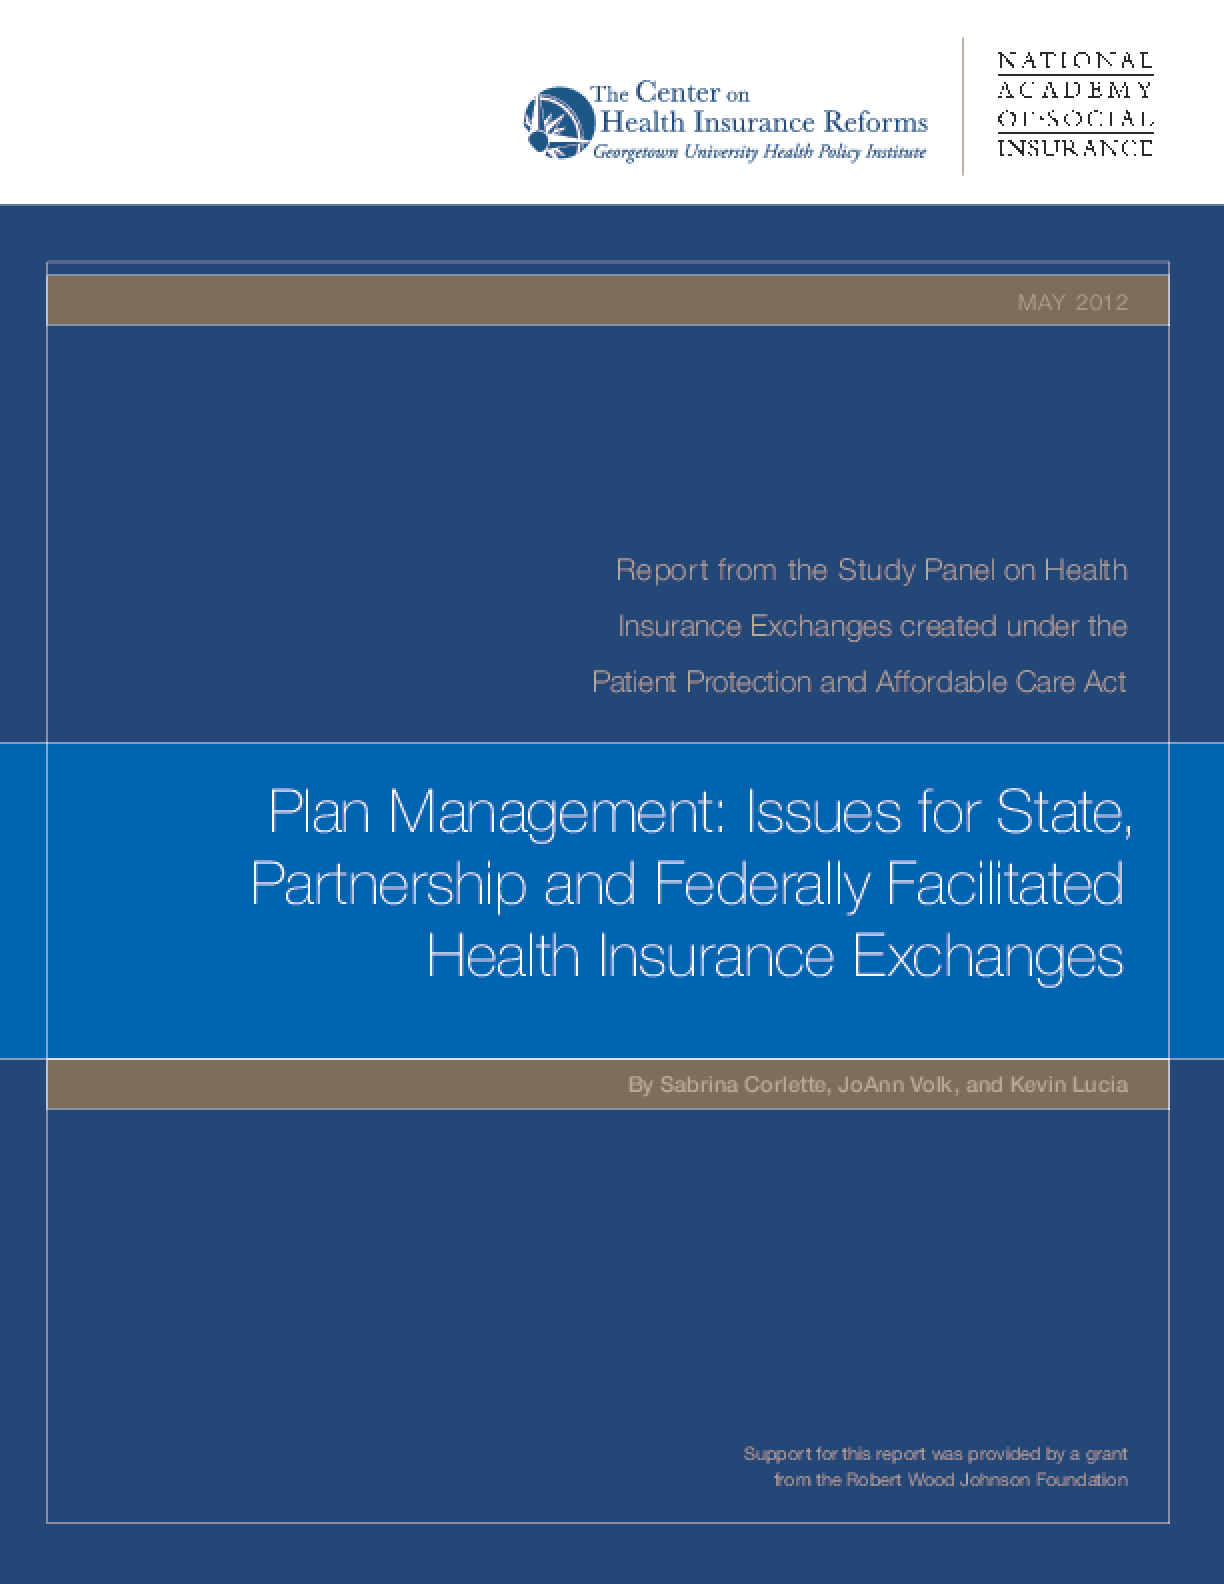 Plan Management: Issues for State, Partnership and Federally Facilitated Health Insurance Exchanges